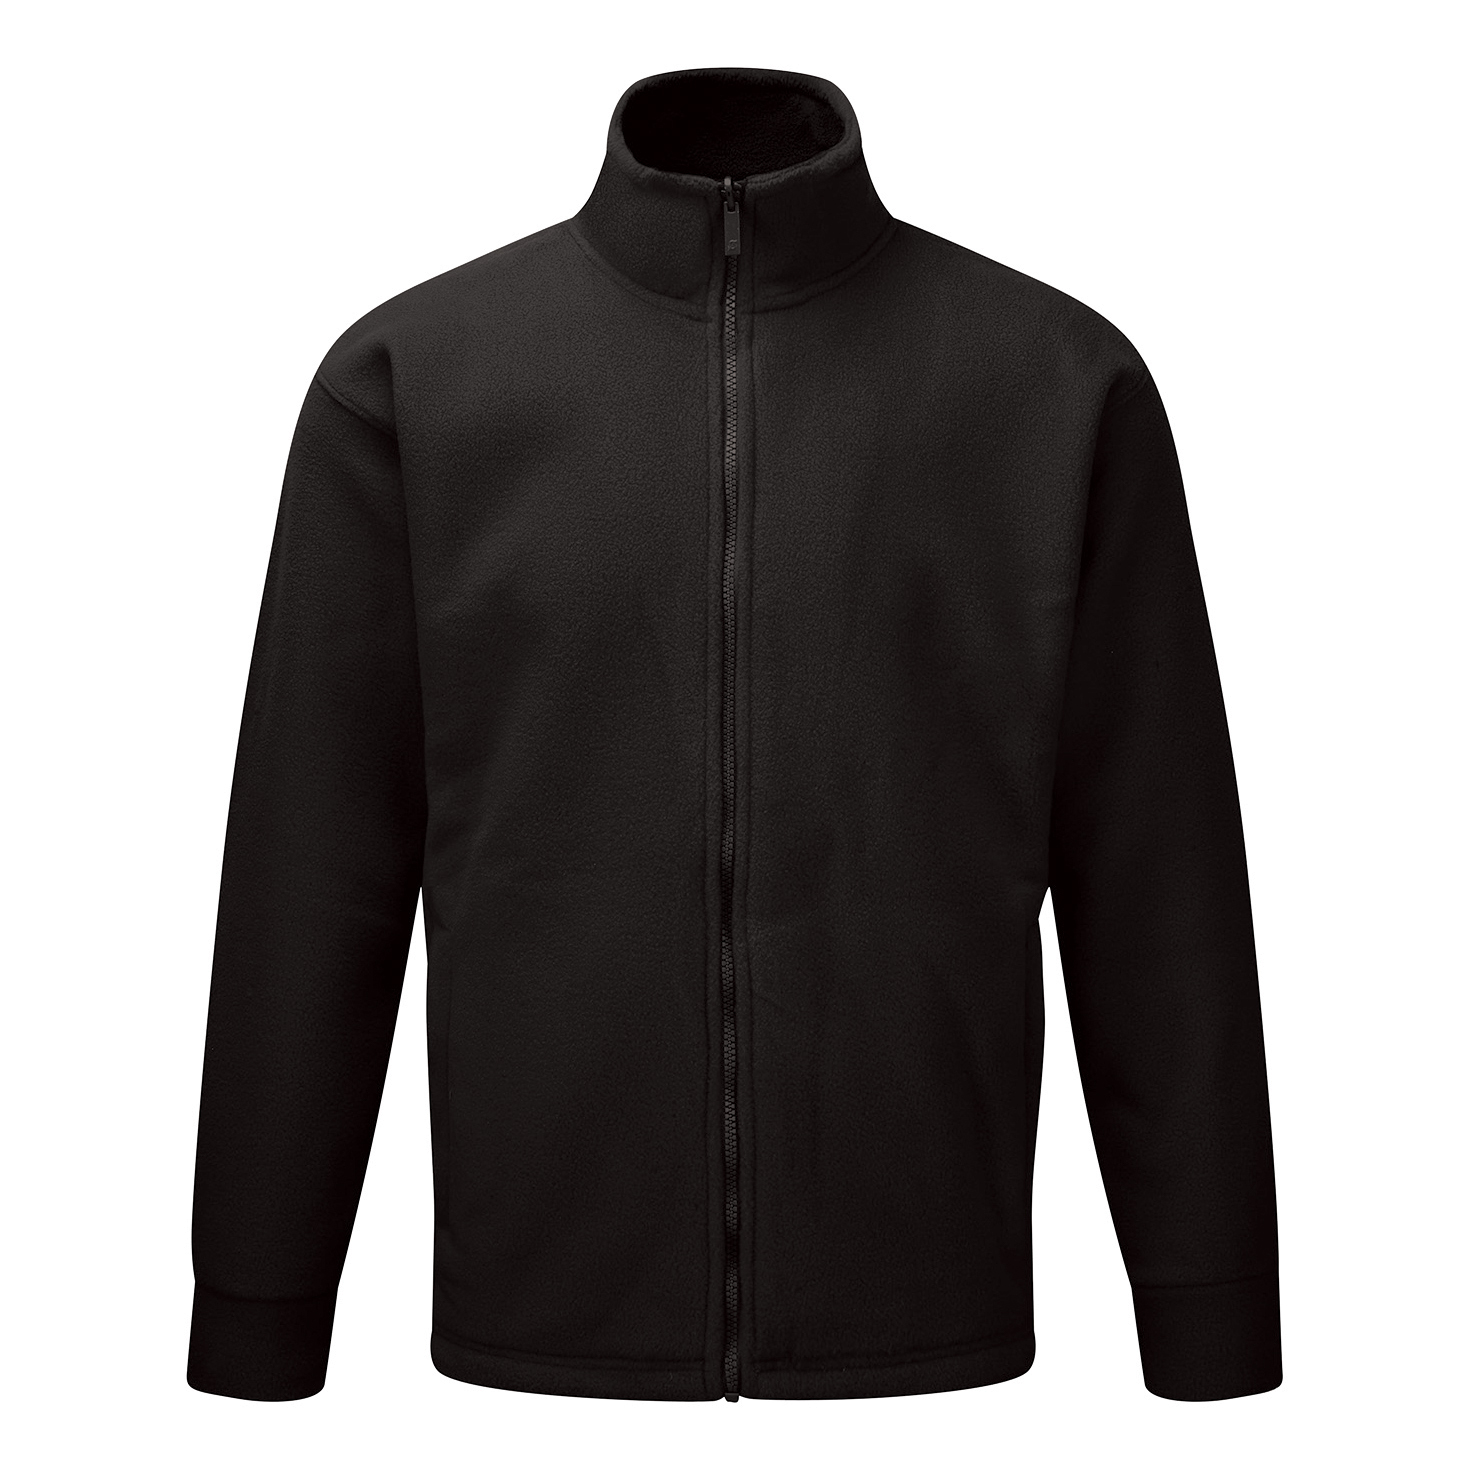 ST Basic Fleece Jacket Elasticated Cuffs and Full Zip Front XXLarge Blk Ref 59075 *Approx 3 Day Leadtime*